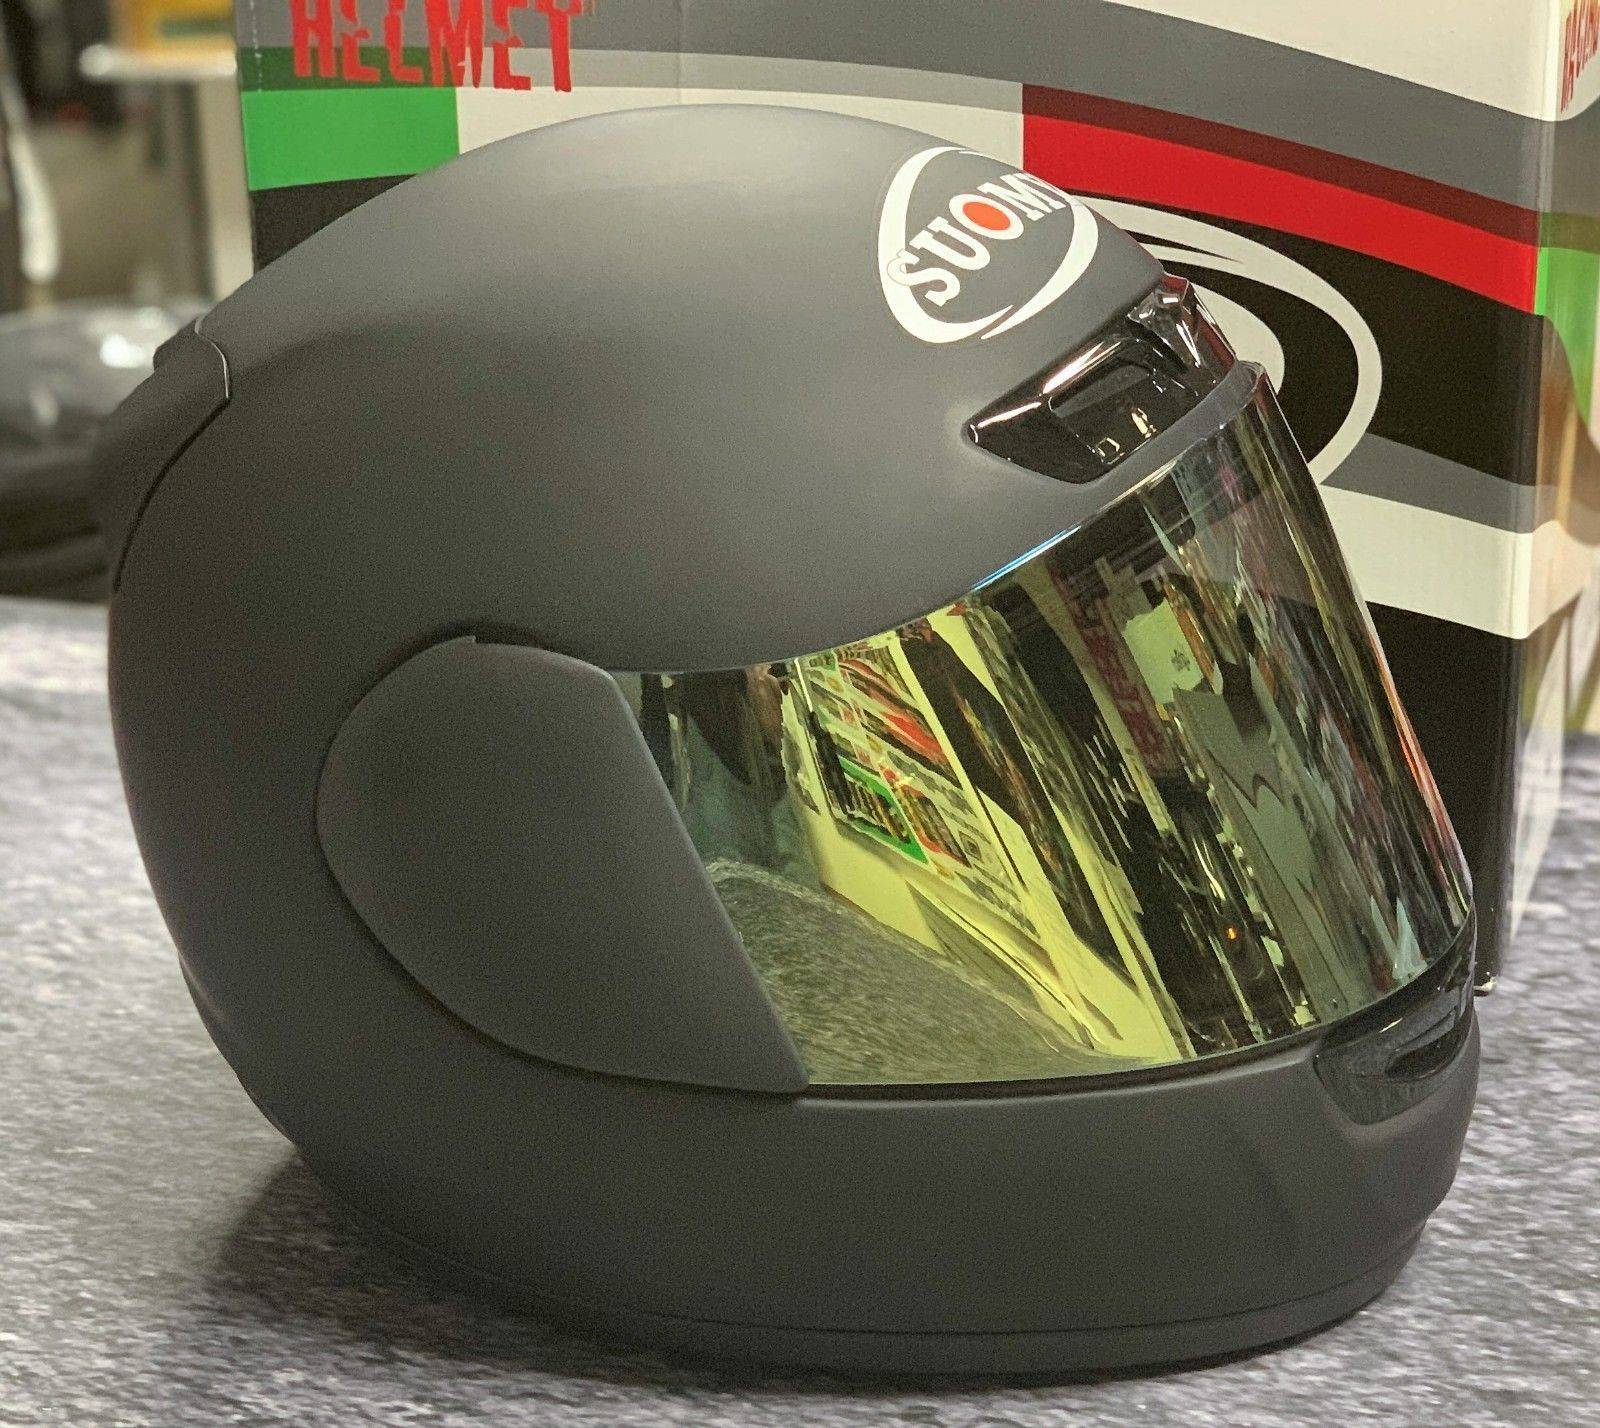 26d81c98f84a9 ... suomy apex sp se  casco ...